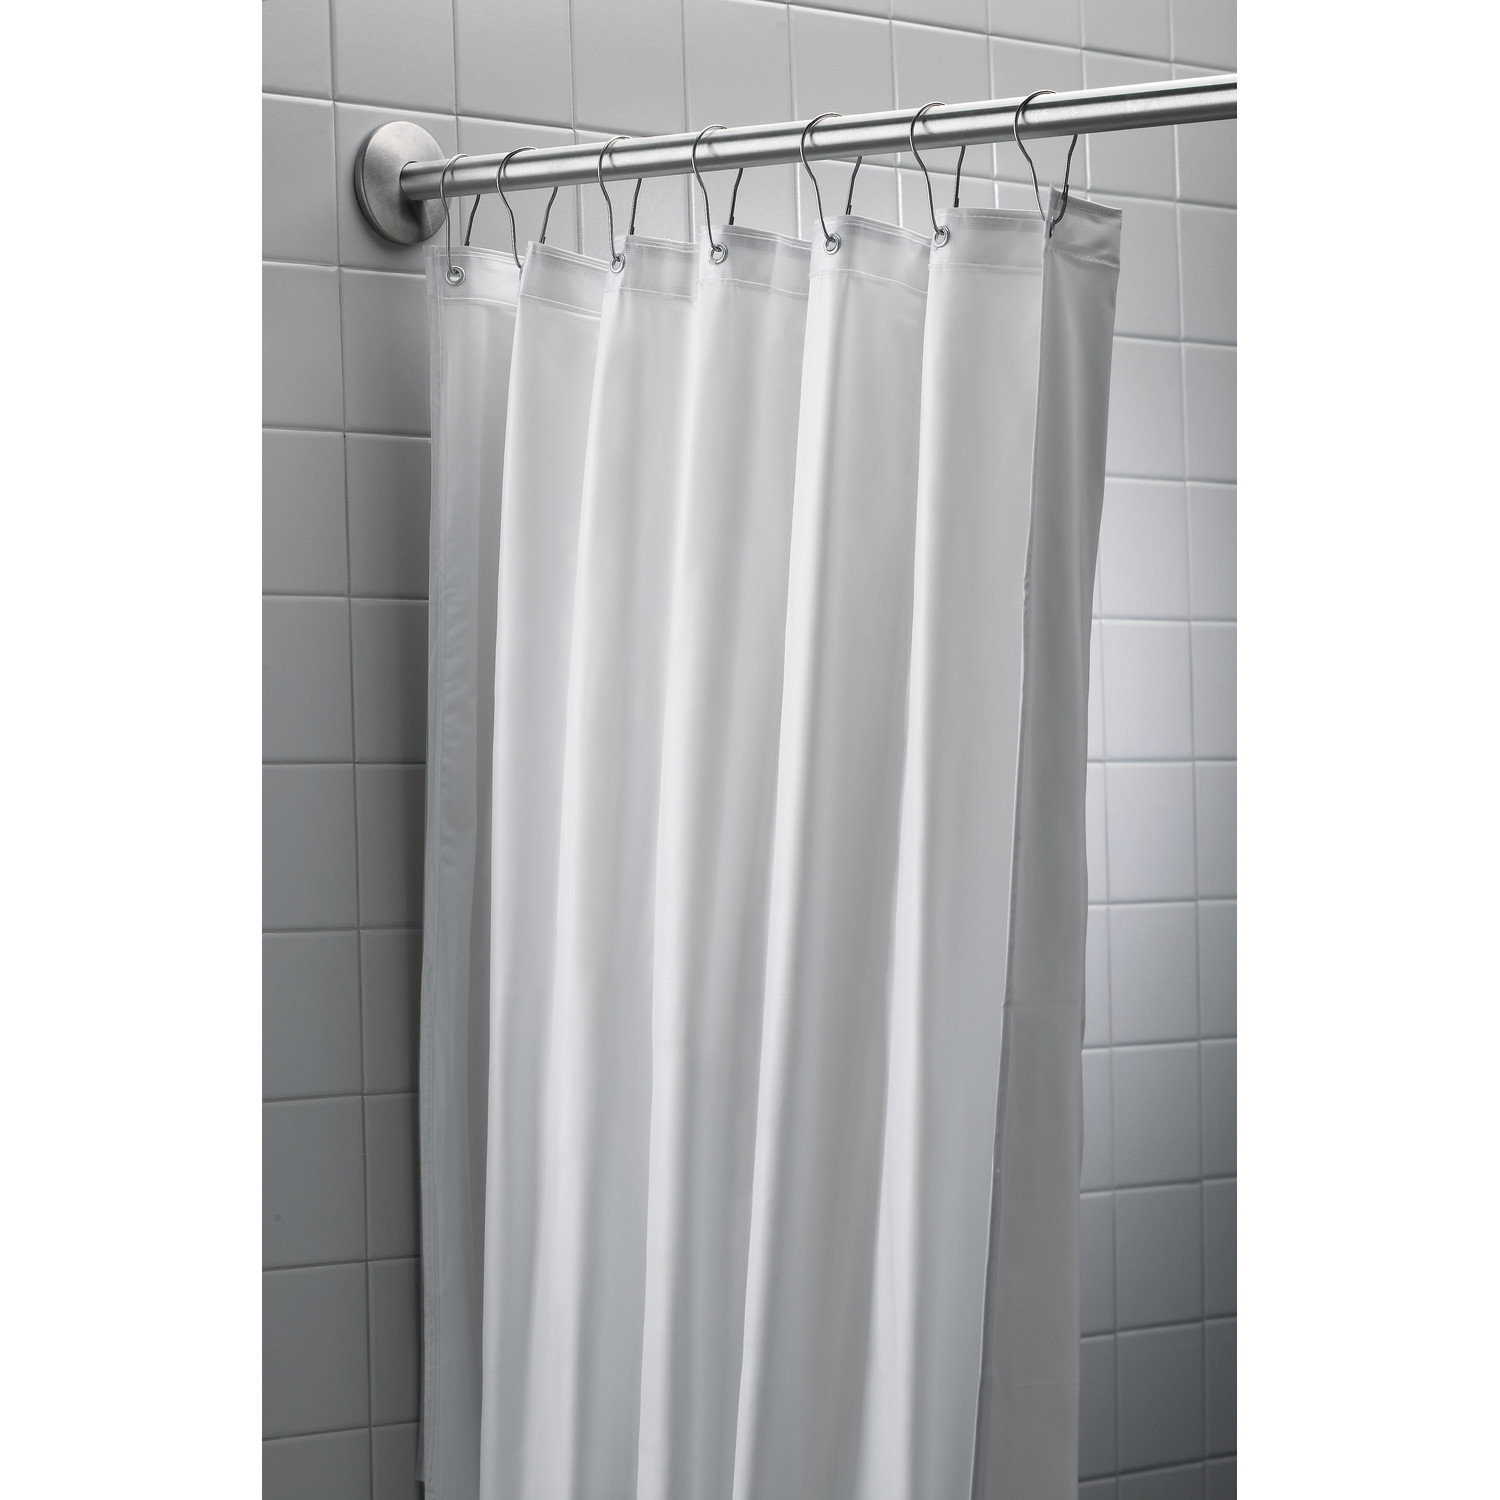 Bradley 9537 3672 White Antimicrobial Shower Curtain 36 X 72